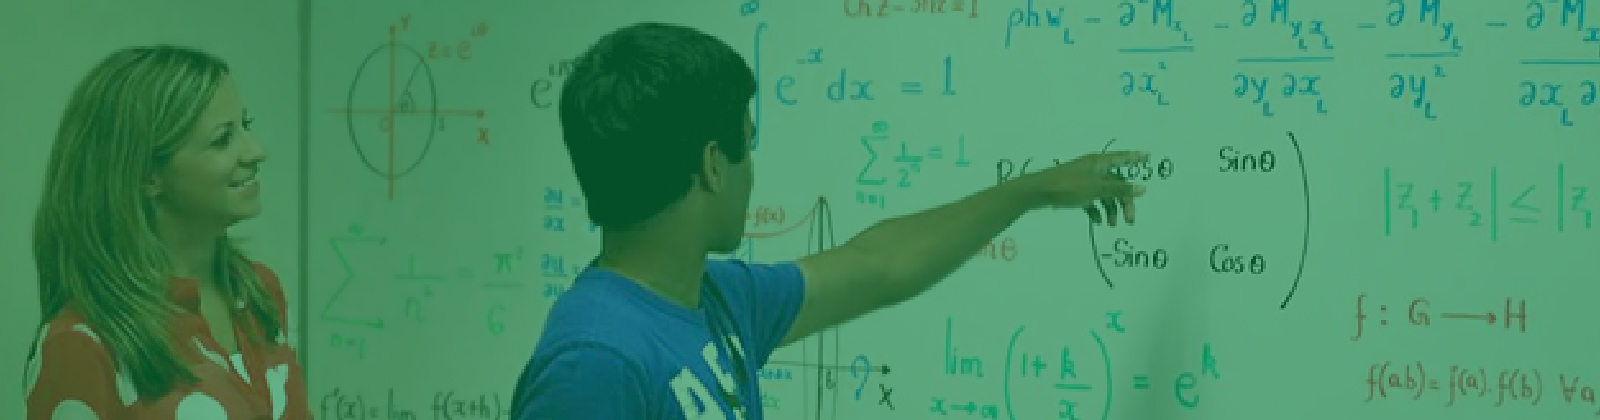 Student at White Board with Equations